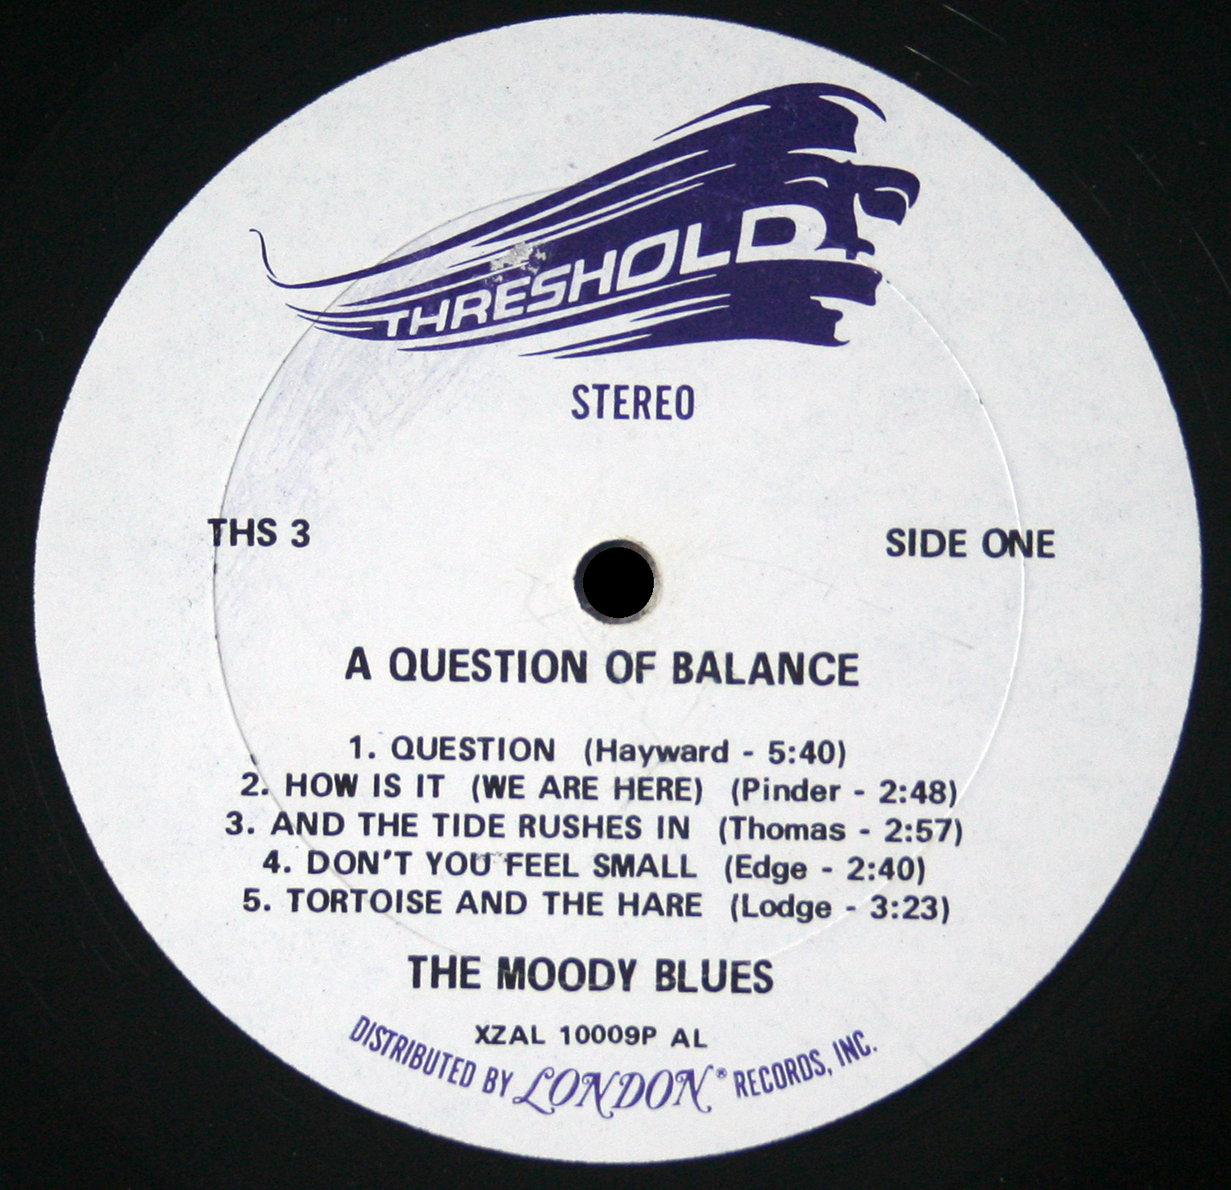 The Moody Blues - A Question of Balance LP Threshold